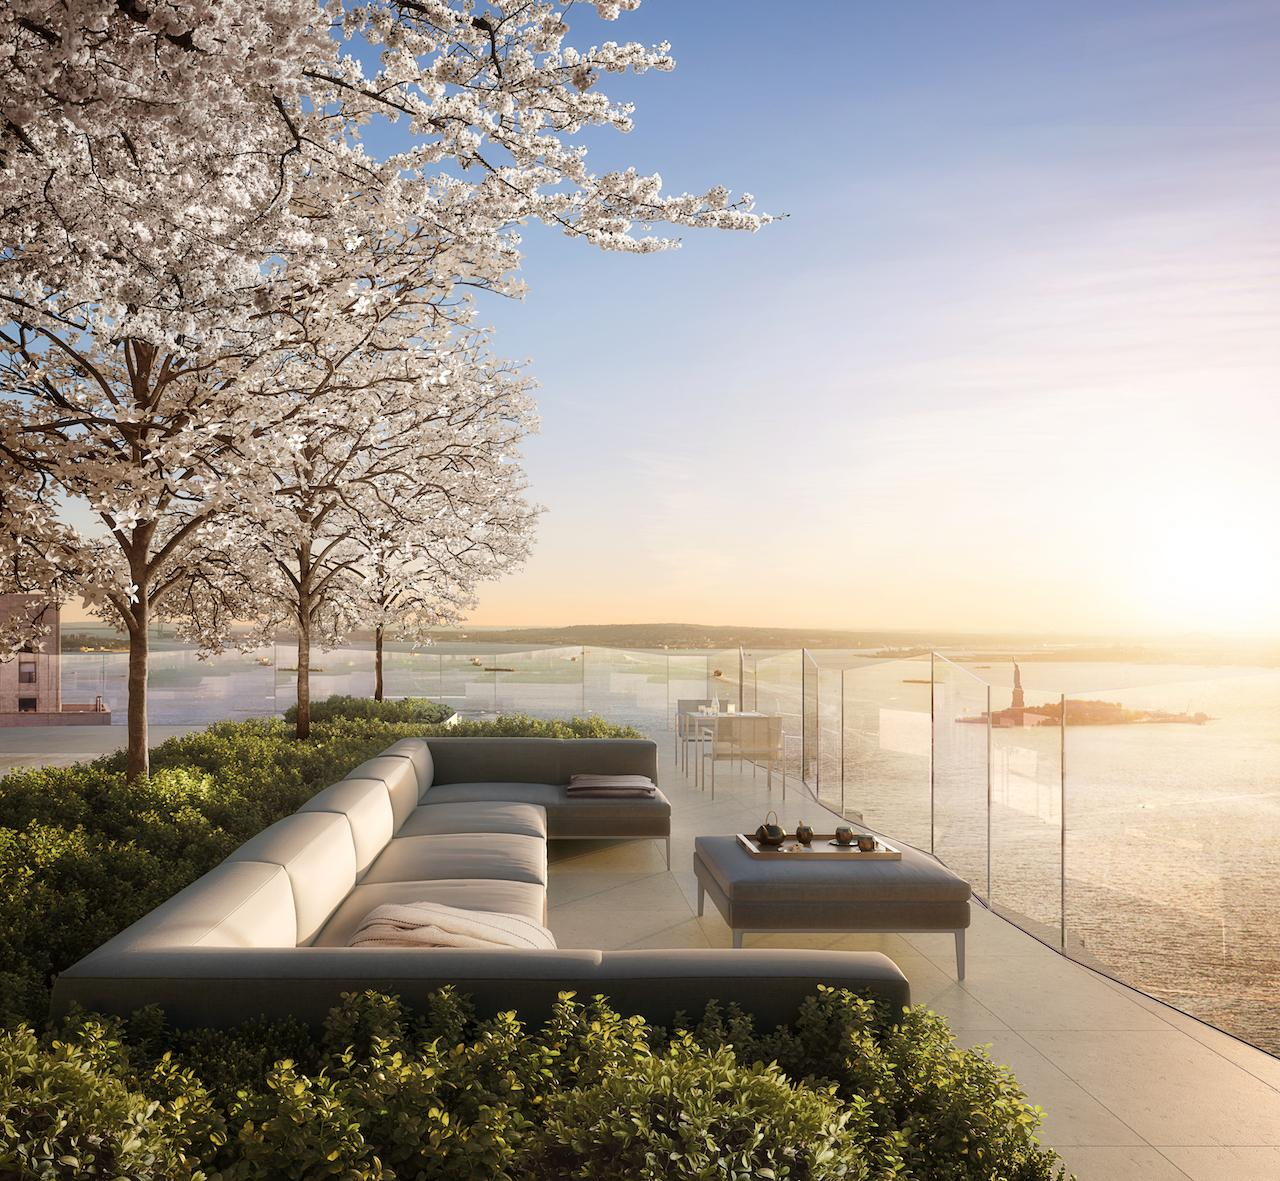 The private rooftop of One Wall Street. It is set to be a fabulous addition to the Financial District